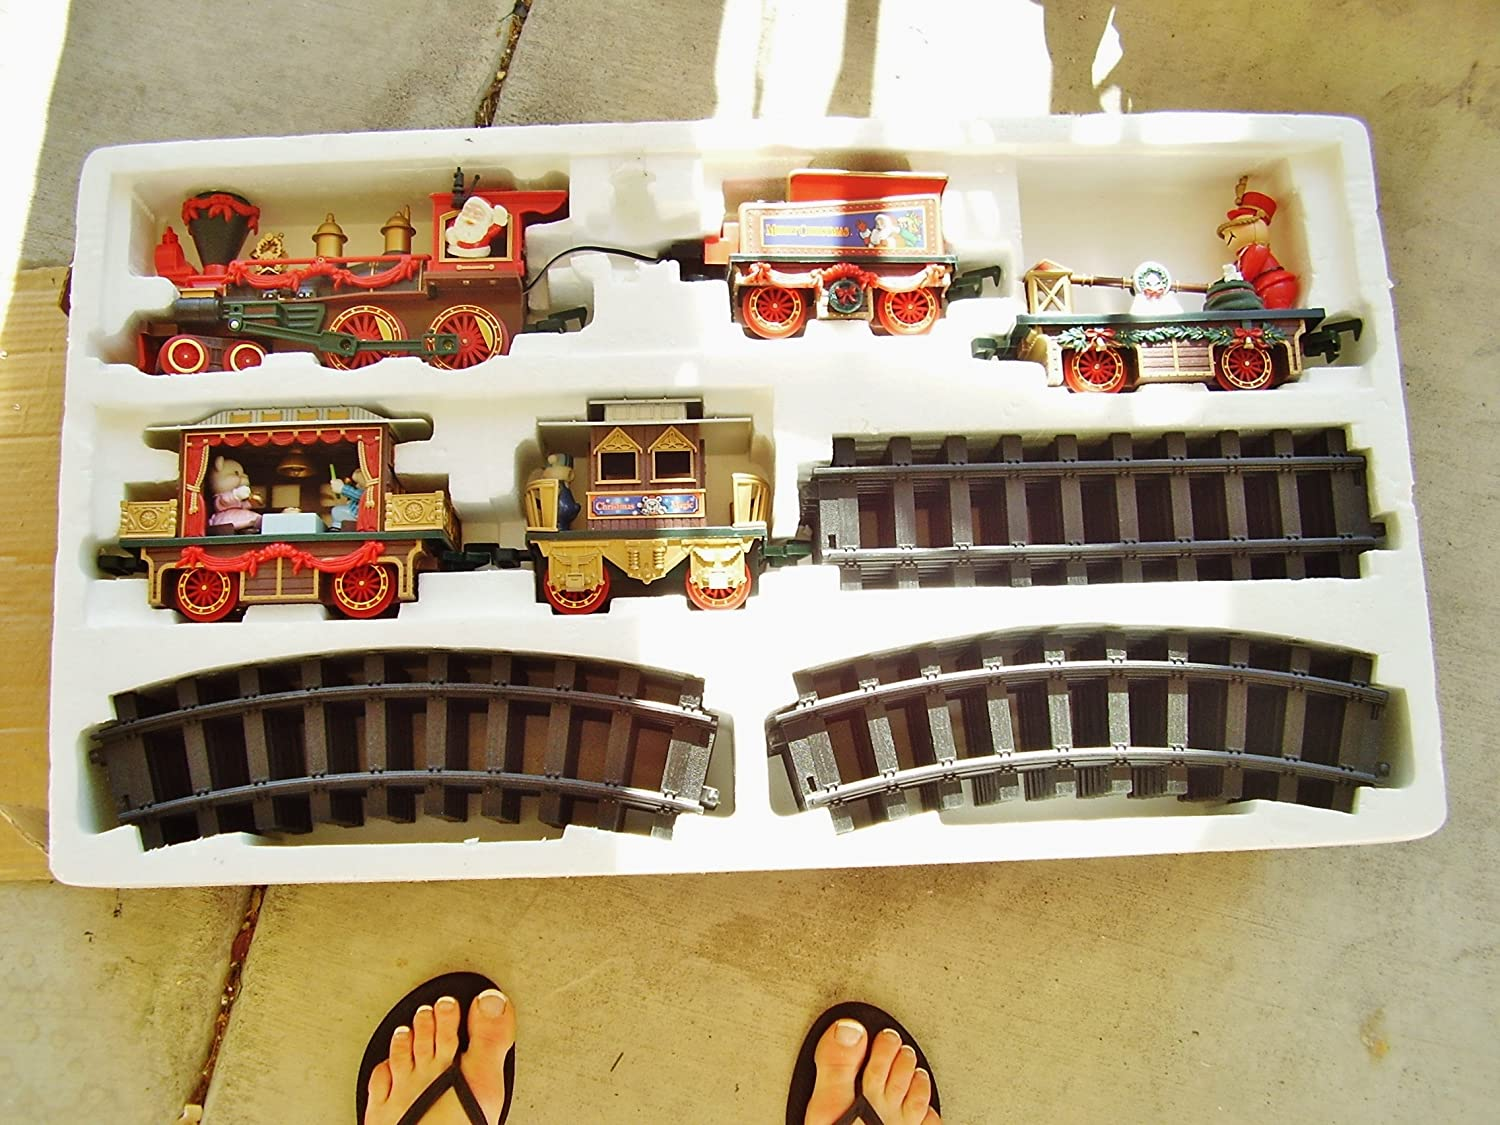 Vintage Christmas Magic Express Train -Hand Painted FIRST EDITION 1996 Collectible -